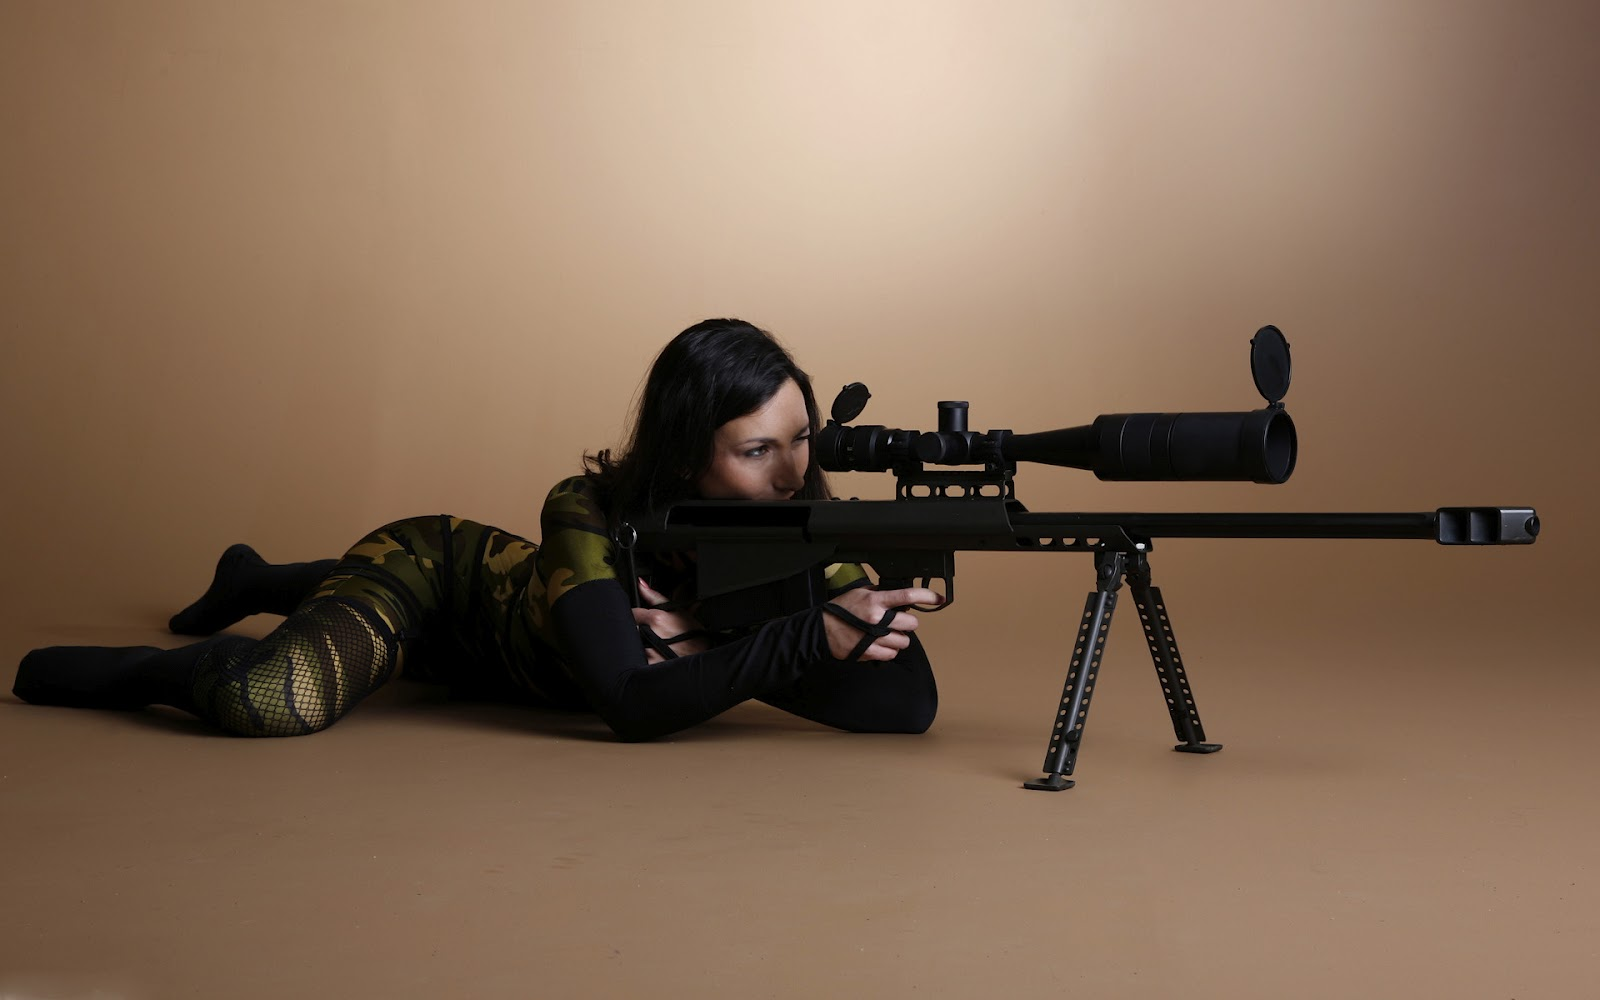 women army sniper wallpaper - photo #1